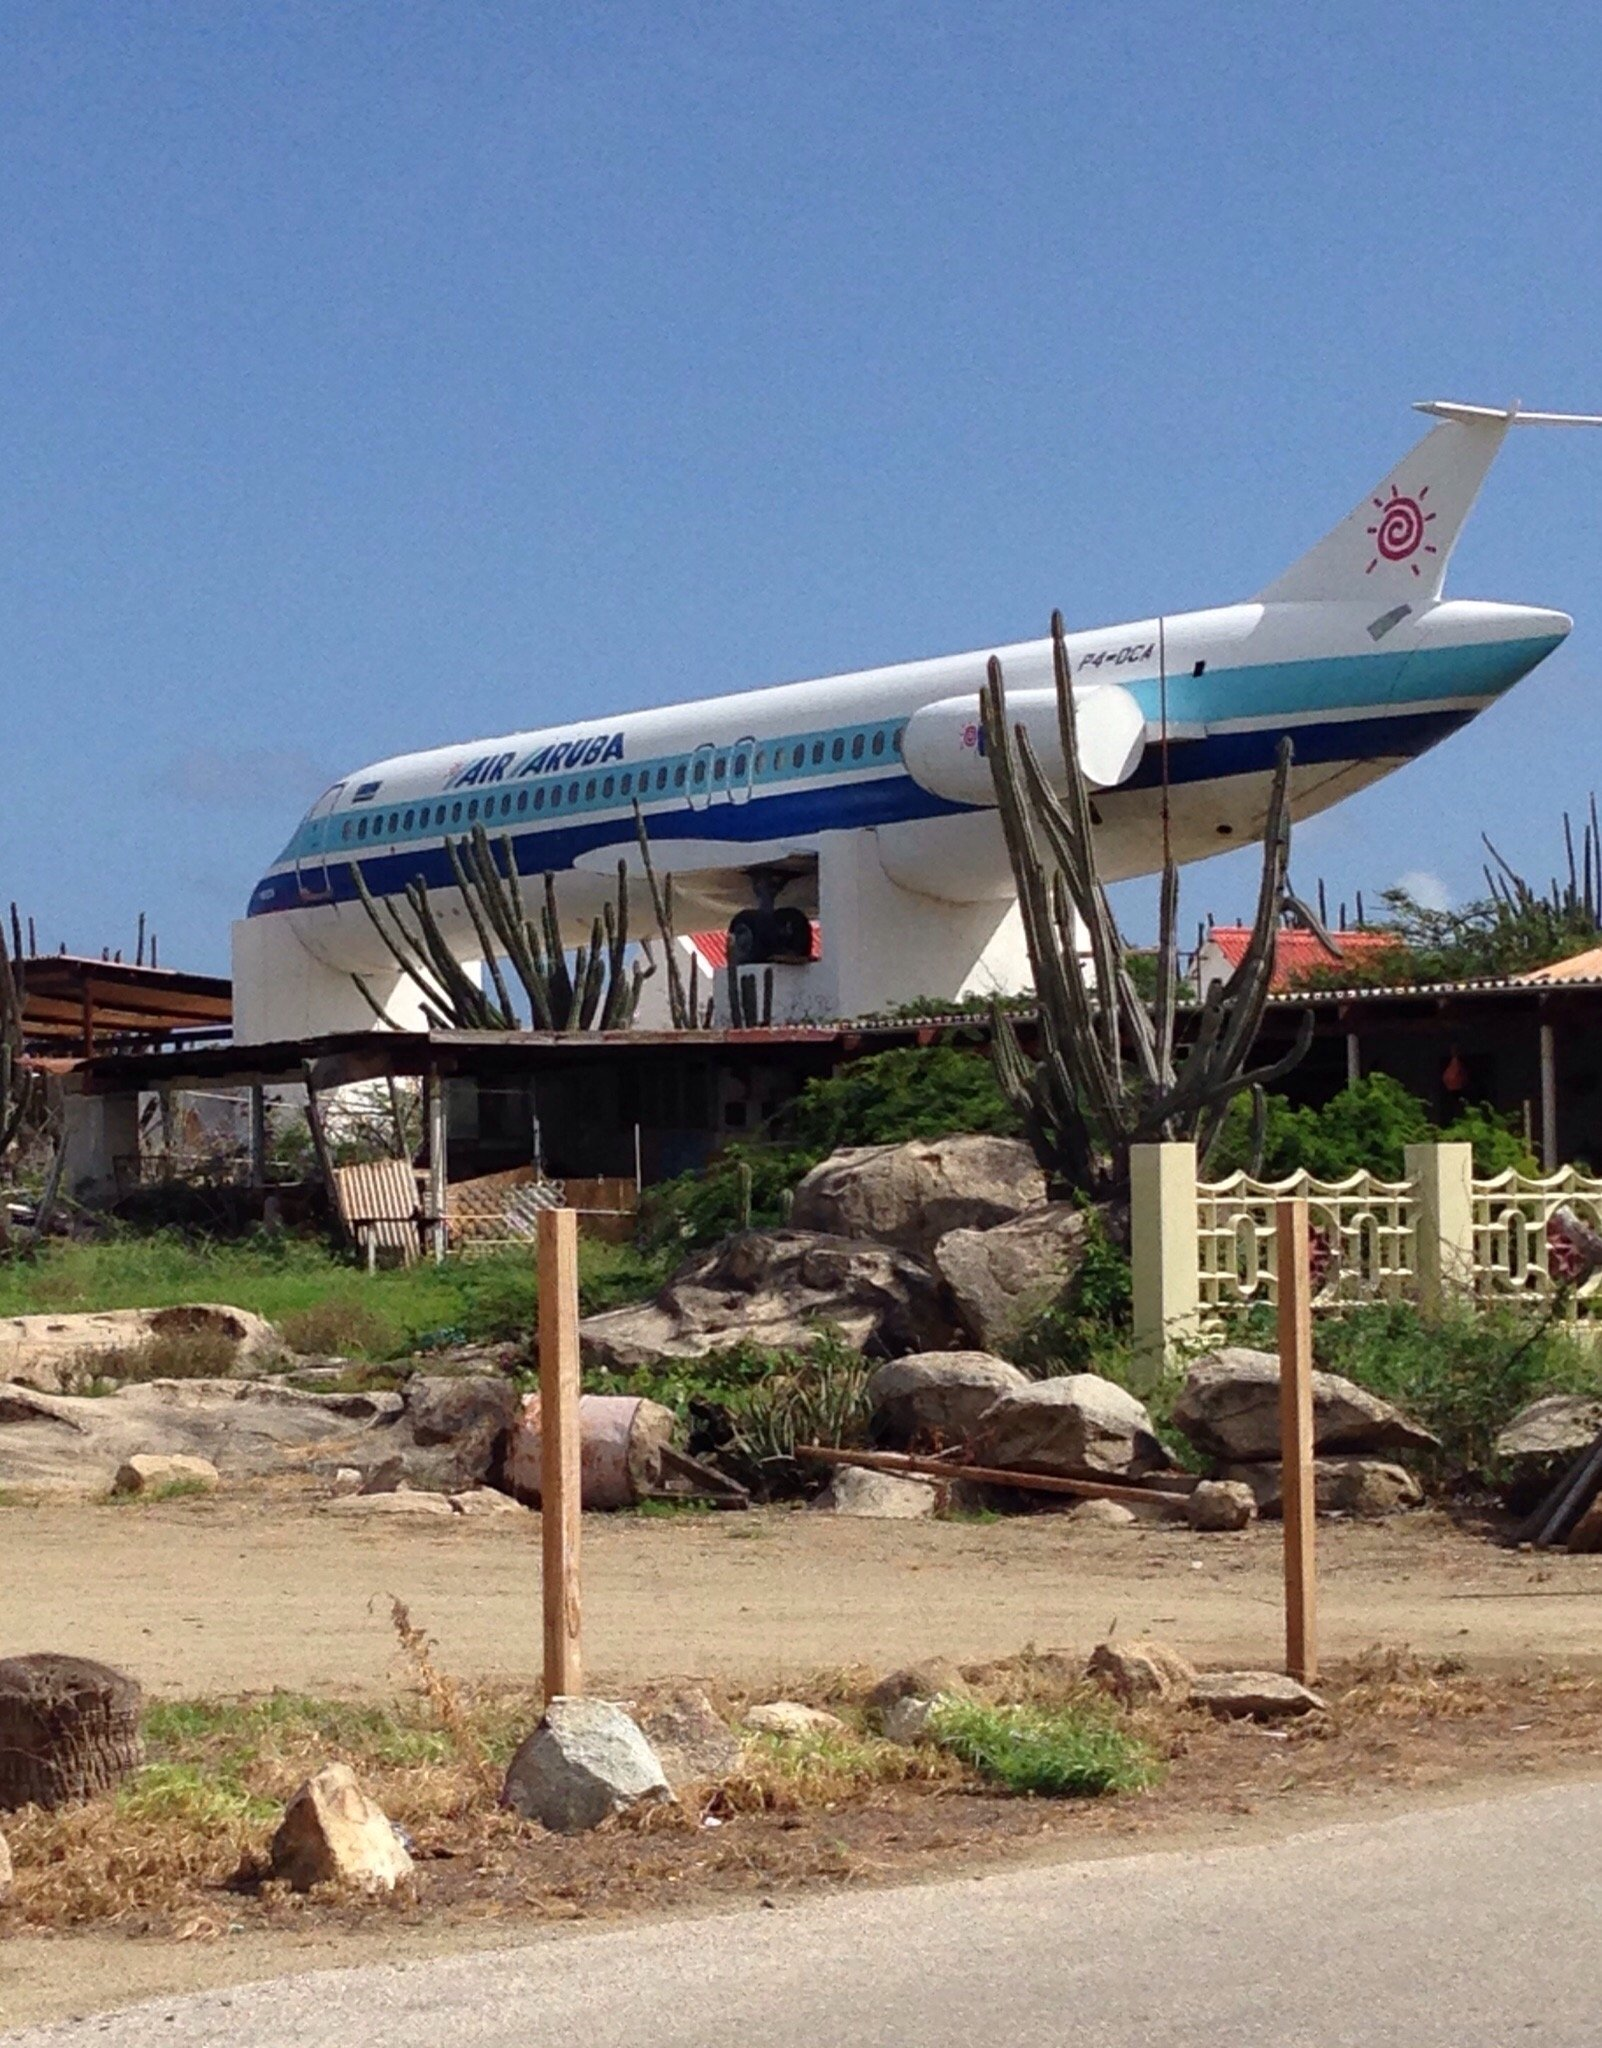 Aruba Airline Airplane on a hilltop over Santa Cruz, just off route 4.  Locals know it's there b